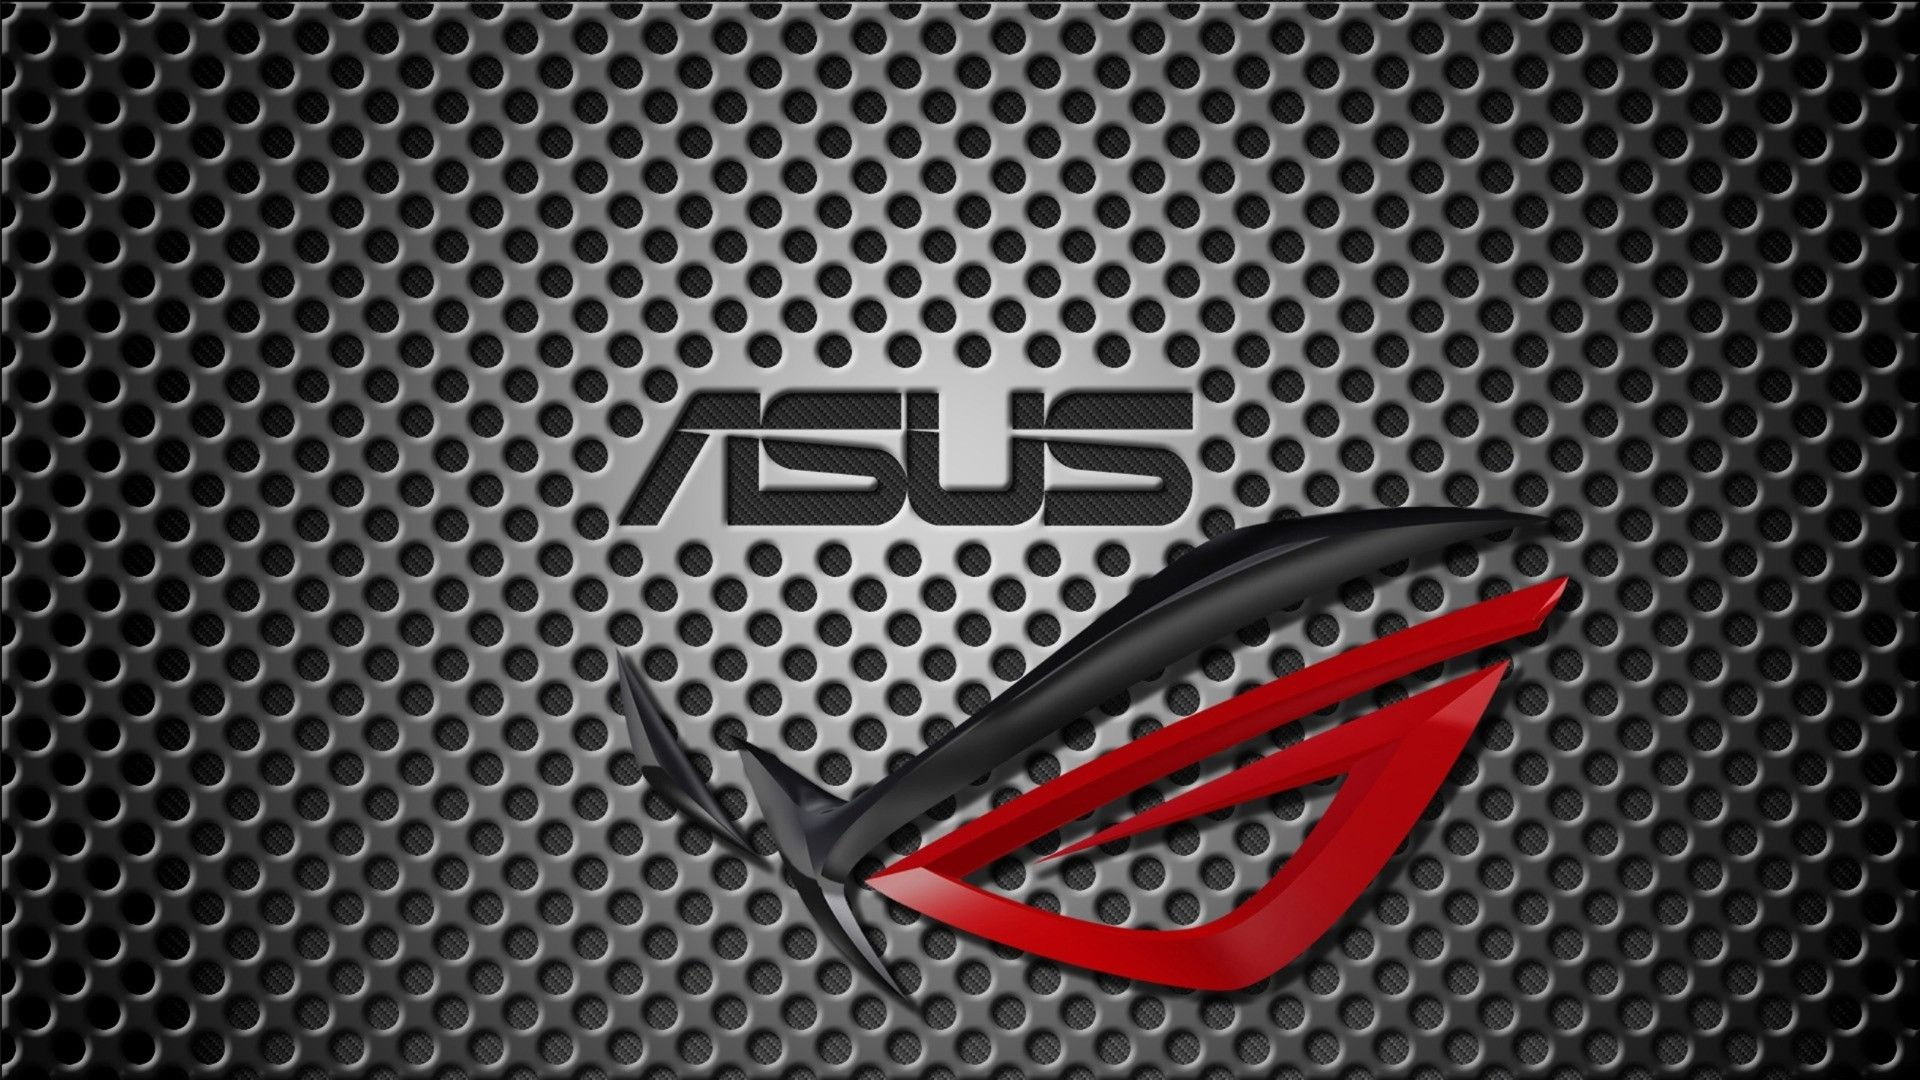 Asus Wallpaper HD Download